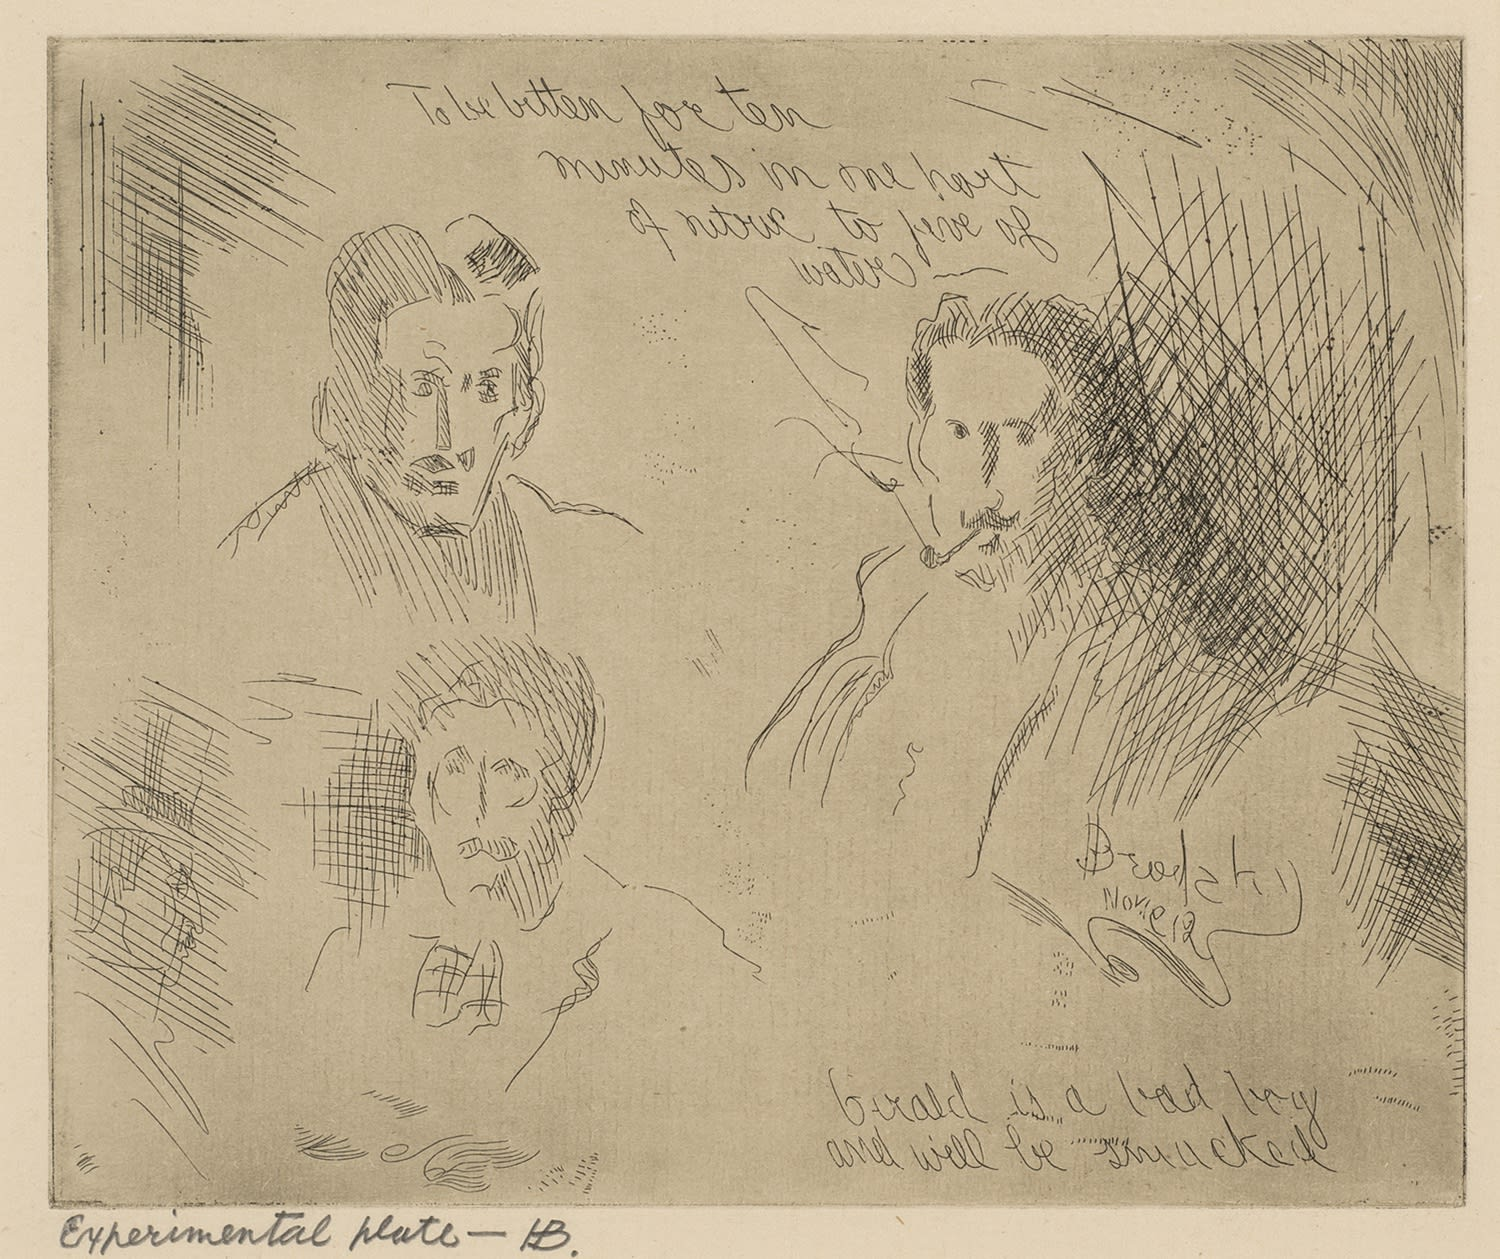 Horace Brodzky (1885-1969) Experimental Plate 1B (Three Self-portraits) c.1912 Etching on paper 13.8 x 16.2 cm Ben Uri Collection © Horace Brodzky estate